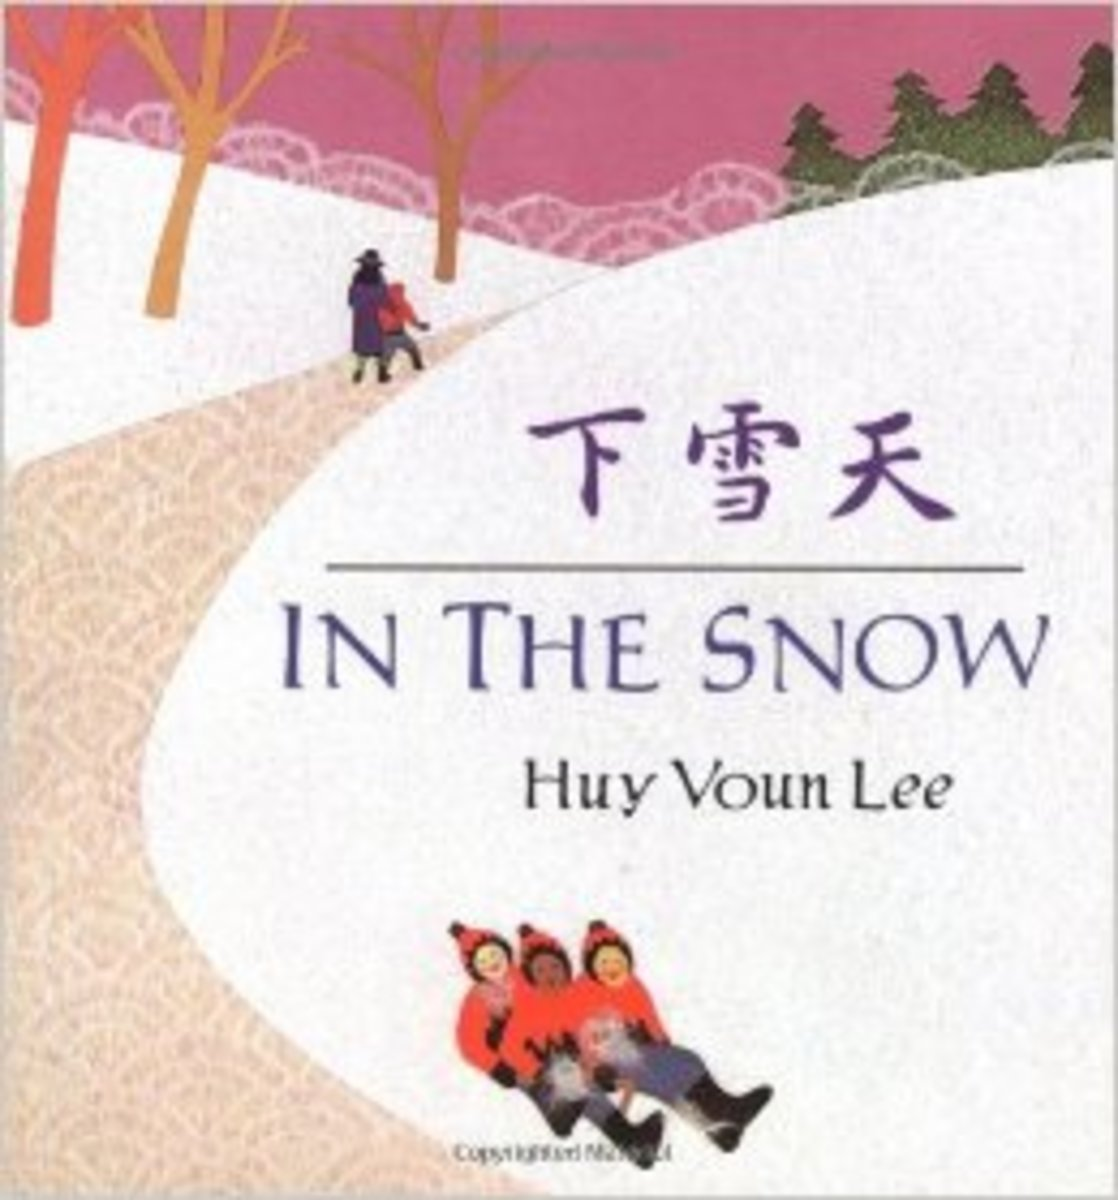 In the Snow by Huy Voun Lee